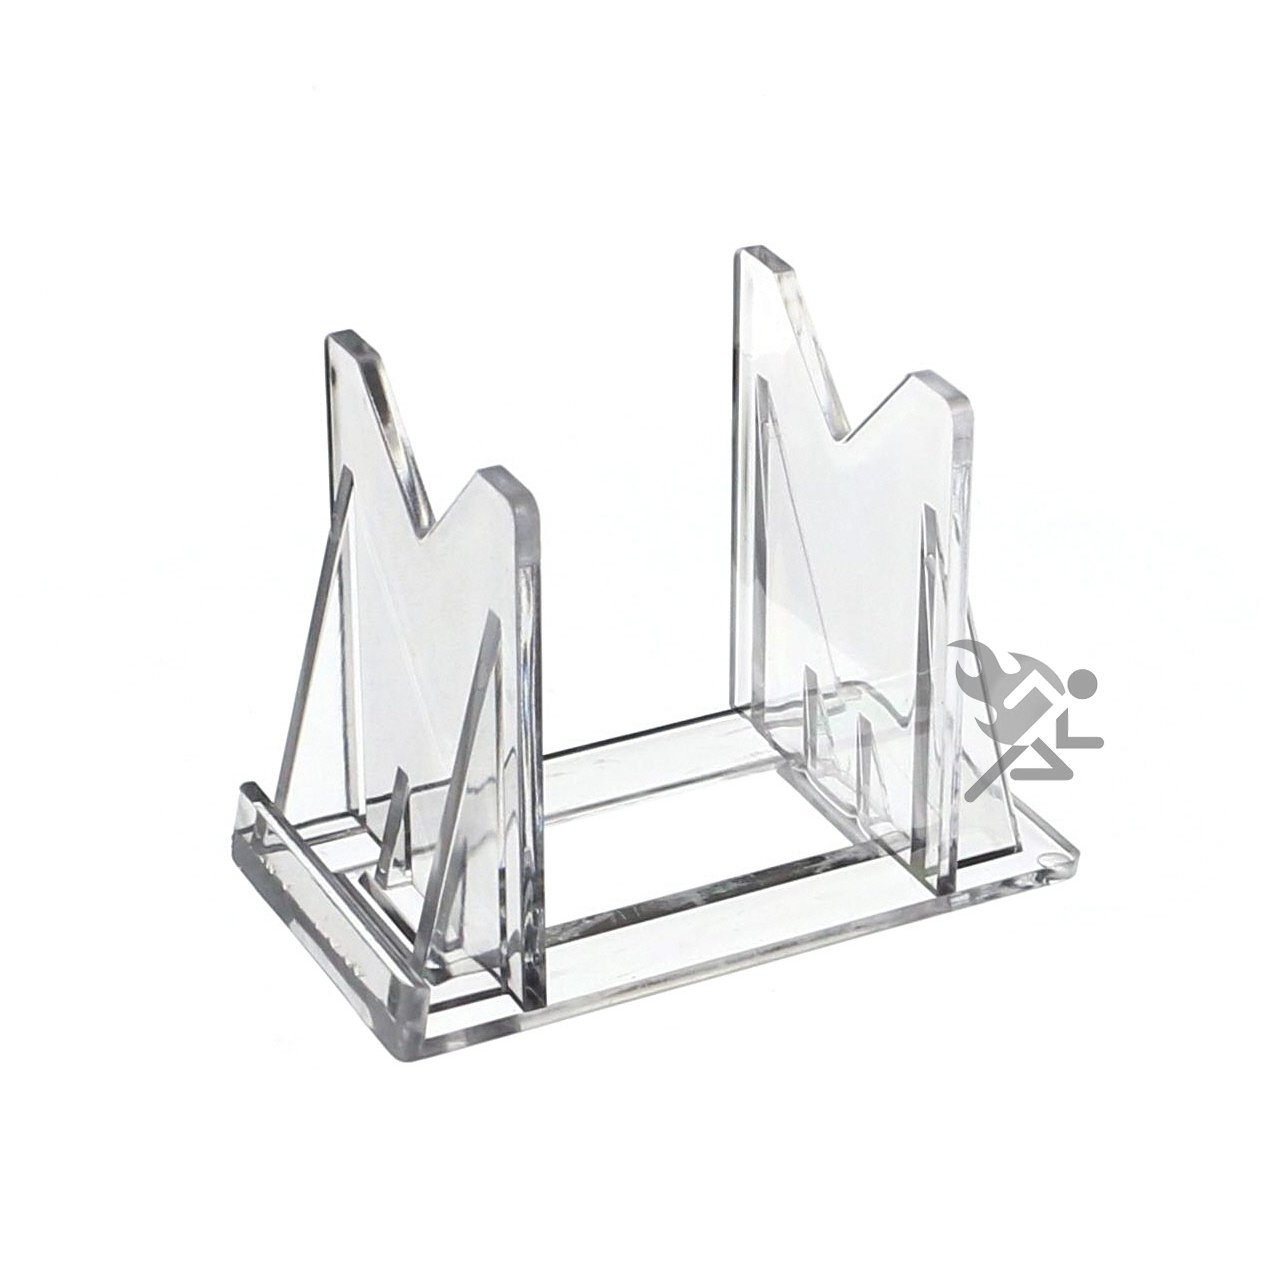 Fishing Lure Display Stand Easels, 25 Pack